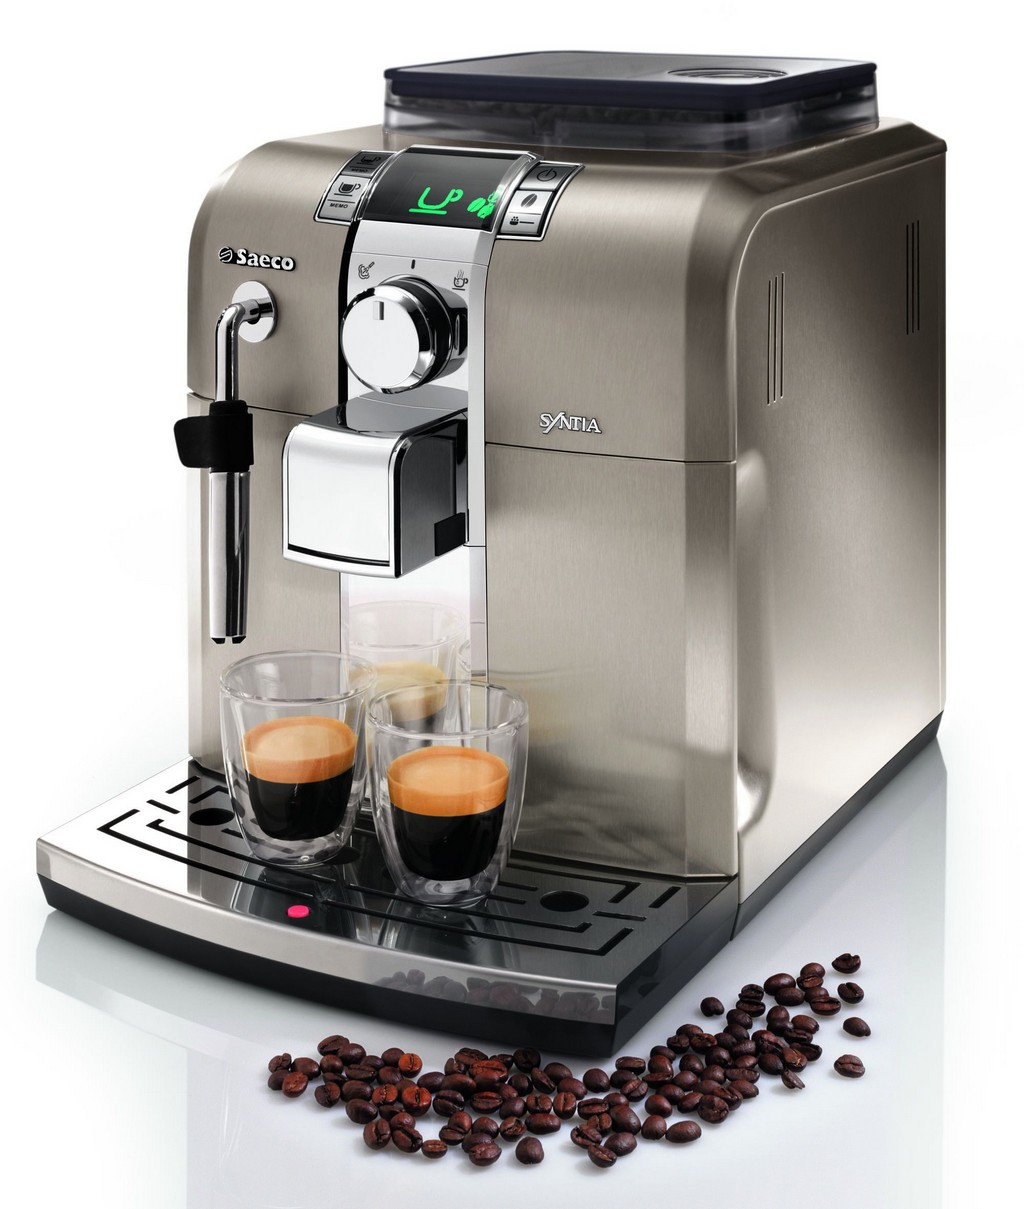 espresso maker manual, best automatic espresso maker, super automatic espresso maker